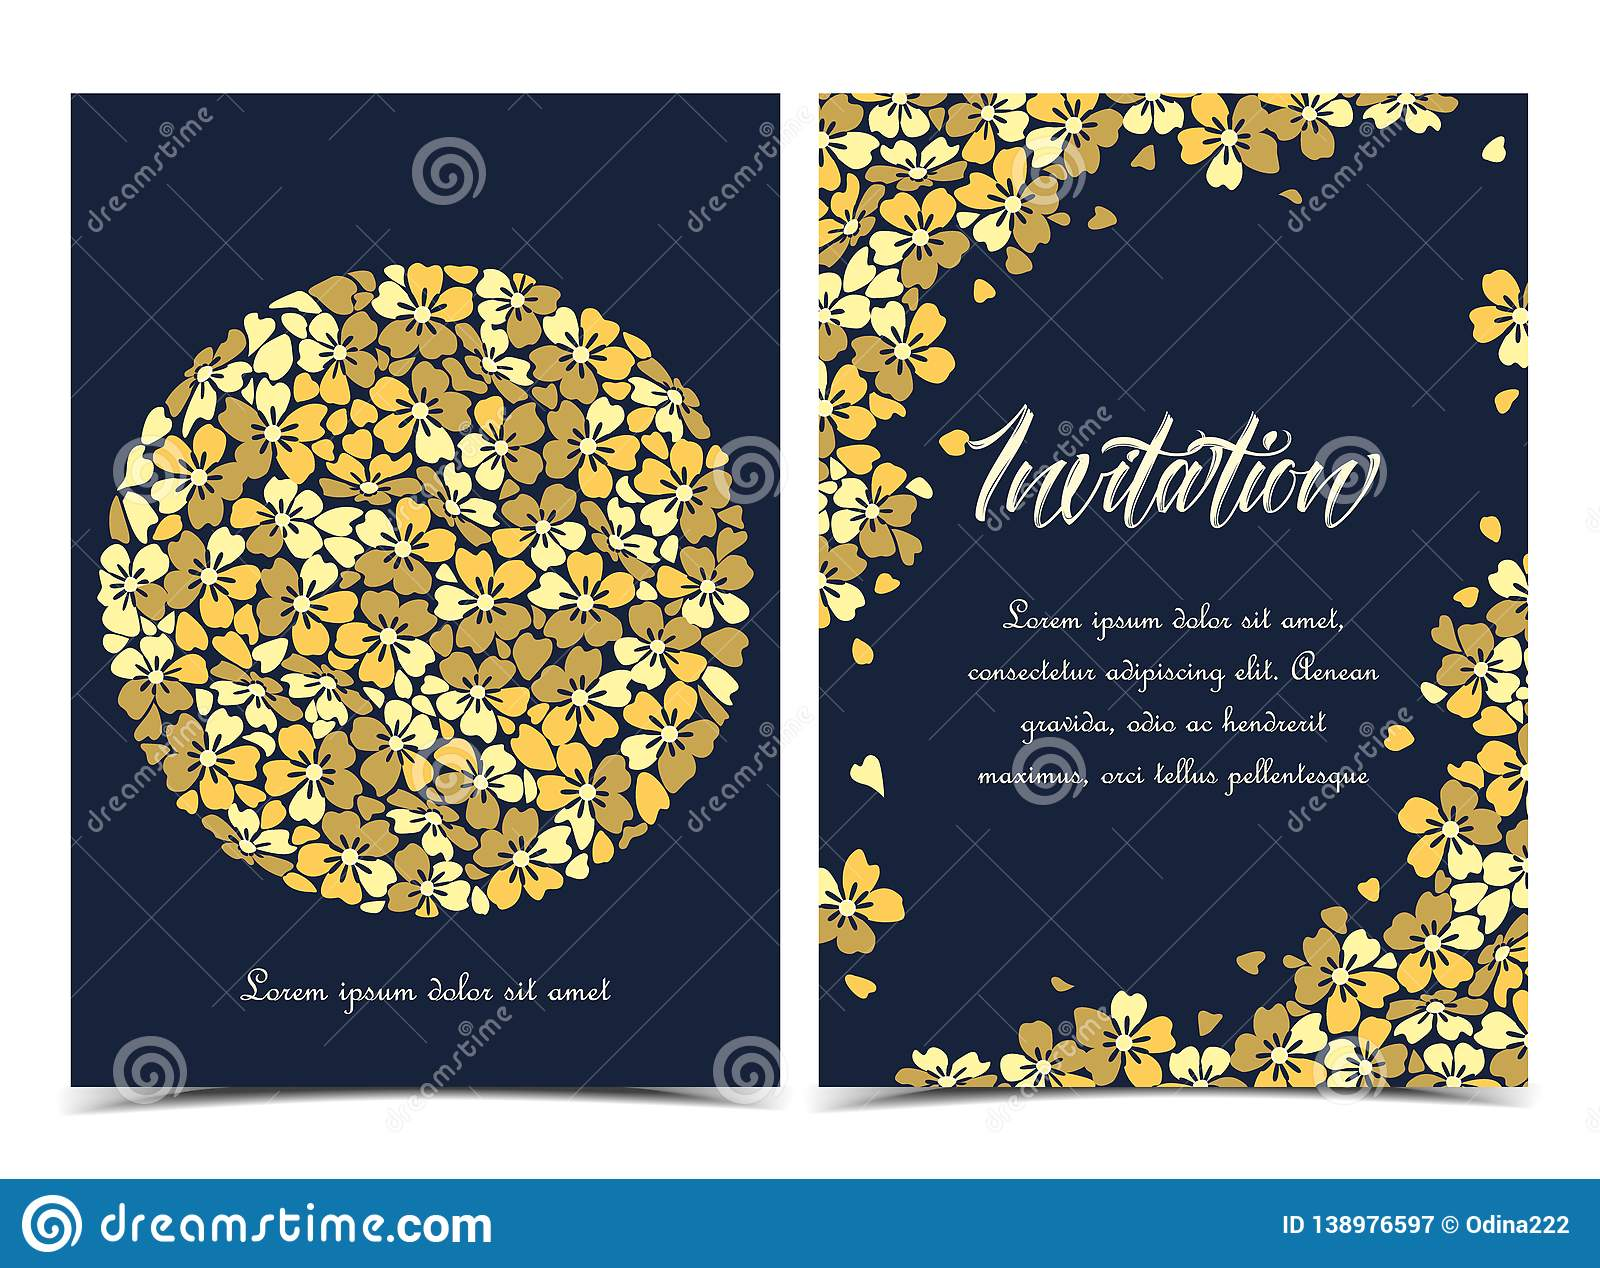 Summer floral decorations. Vector illustration of a circle-shaped flower. Floral background. Set of greeting cards stock illustration